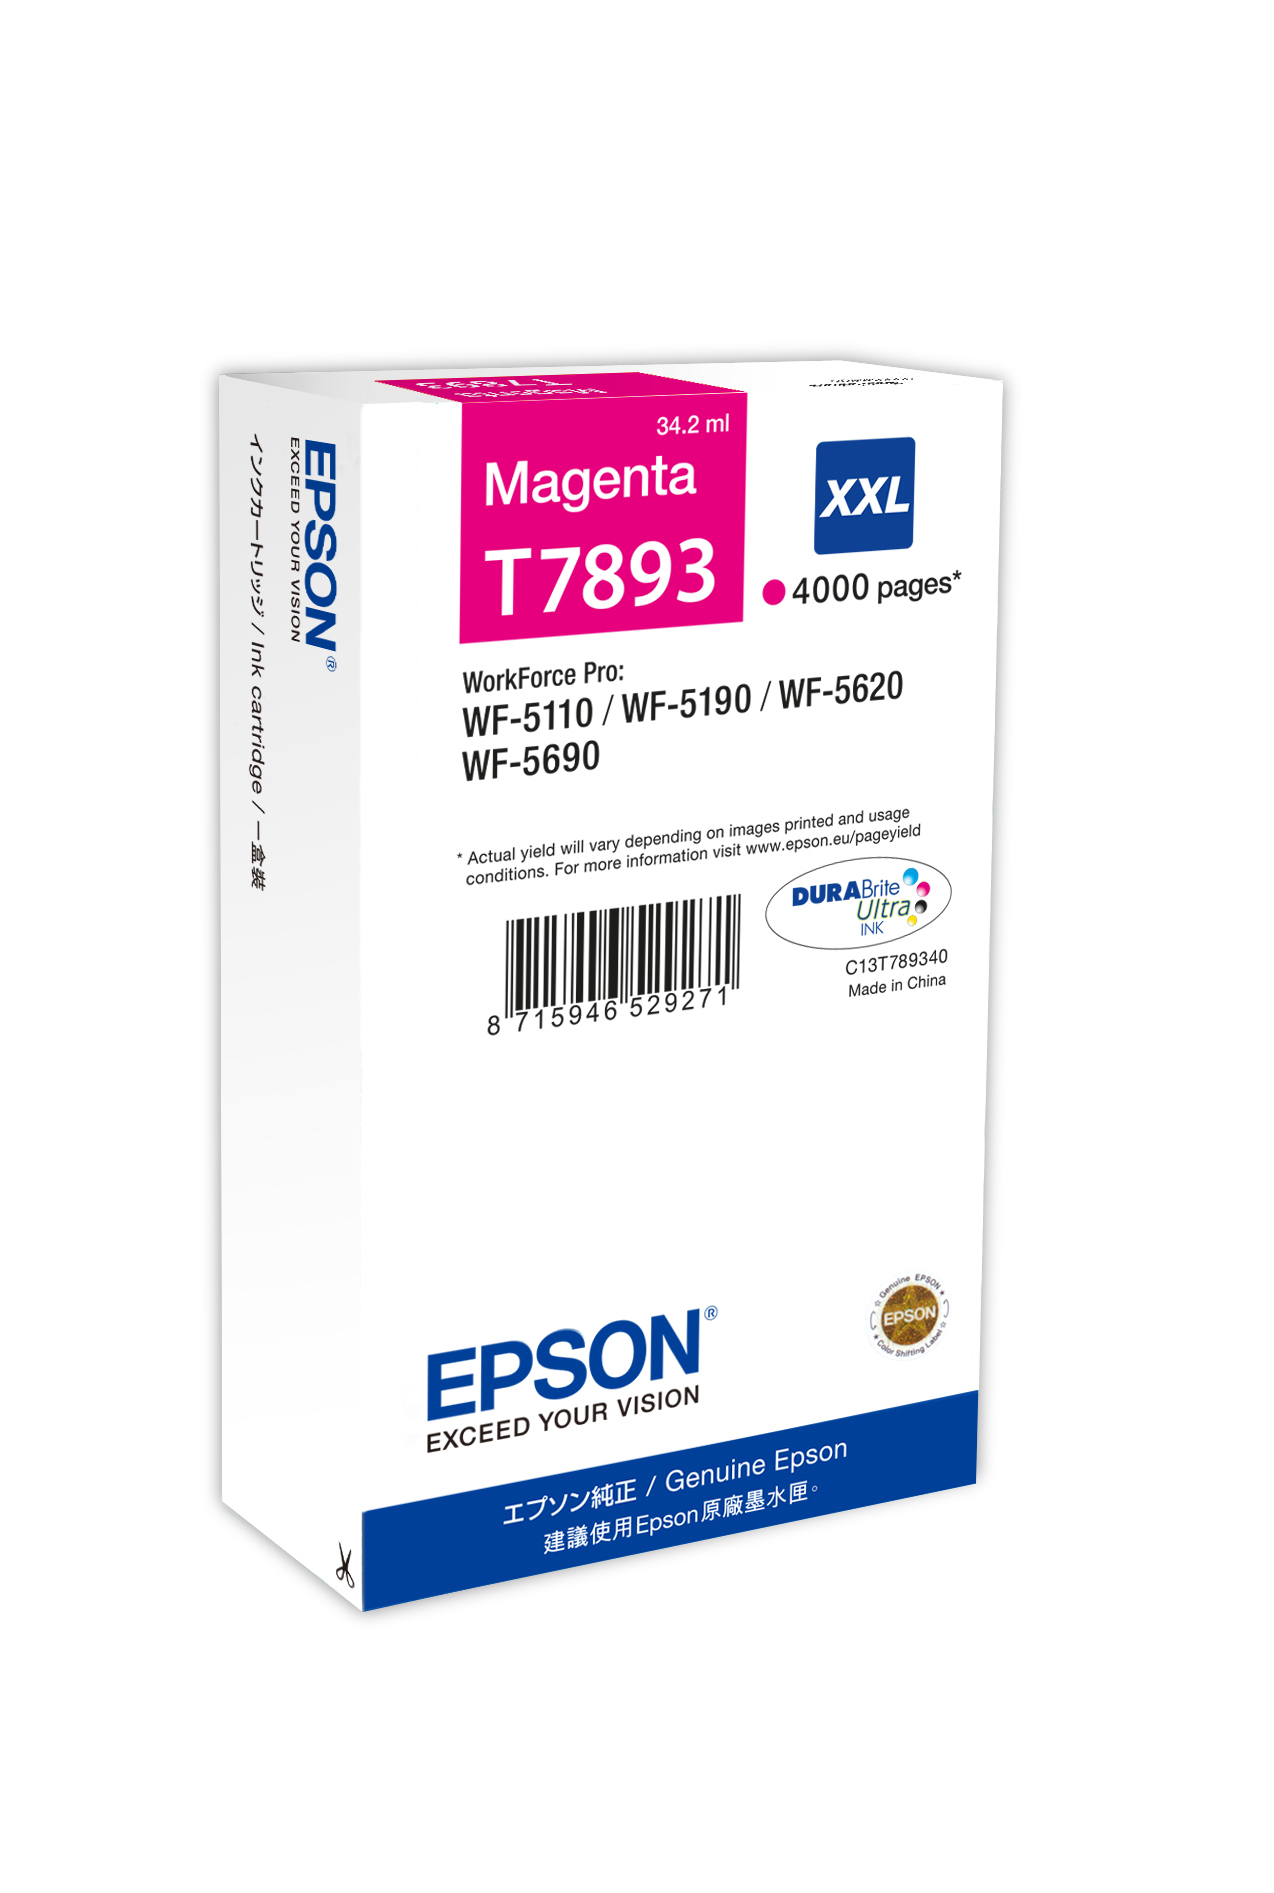 C13t789340 epson Wf5110dw/5190/5620 Magent Ink Cart - AD01